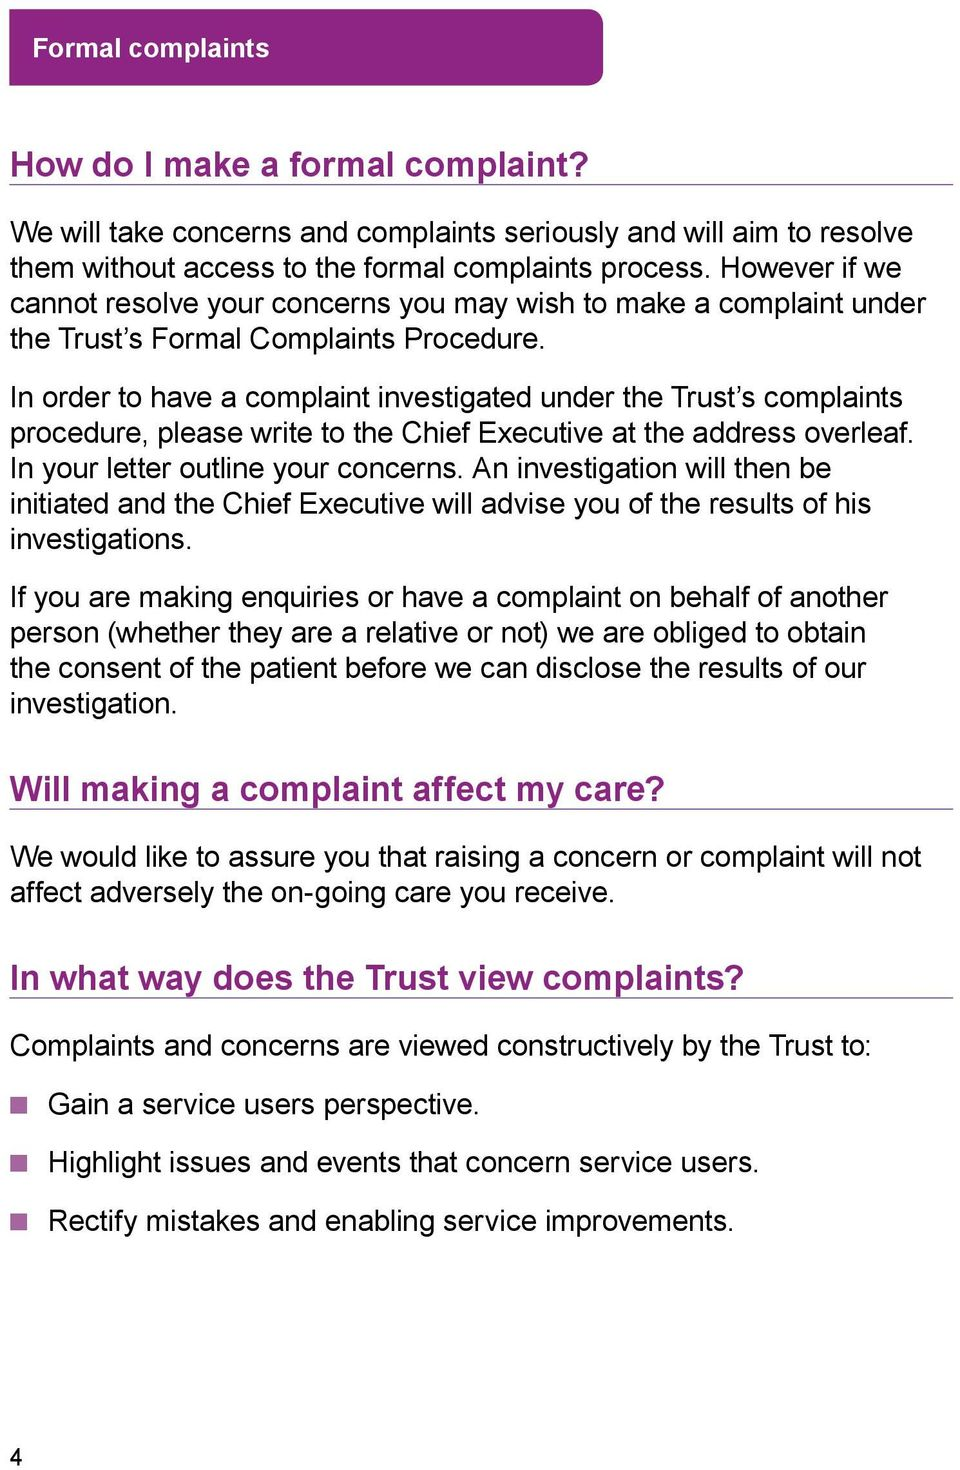 In order to have a complaint investigated under the Trust s complaints procedure, please write to the Chief Executive at the address overleaf. In your letter outline your concerns.